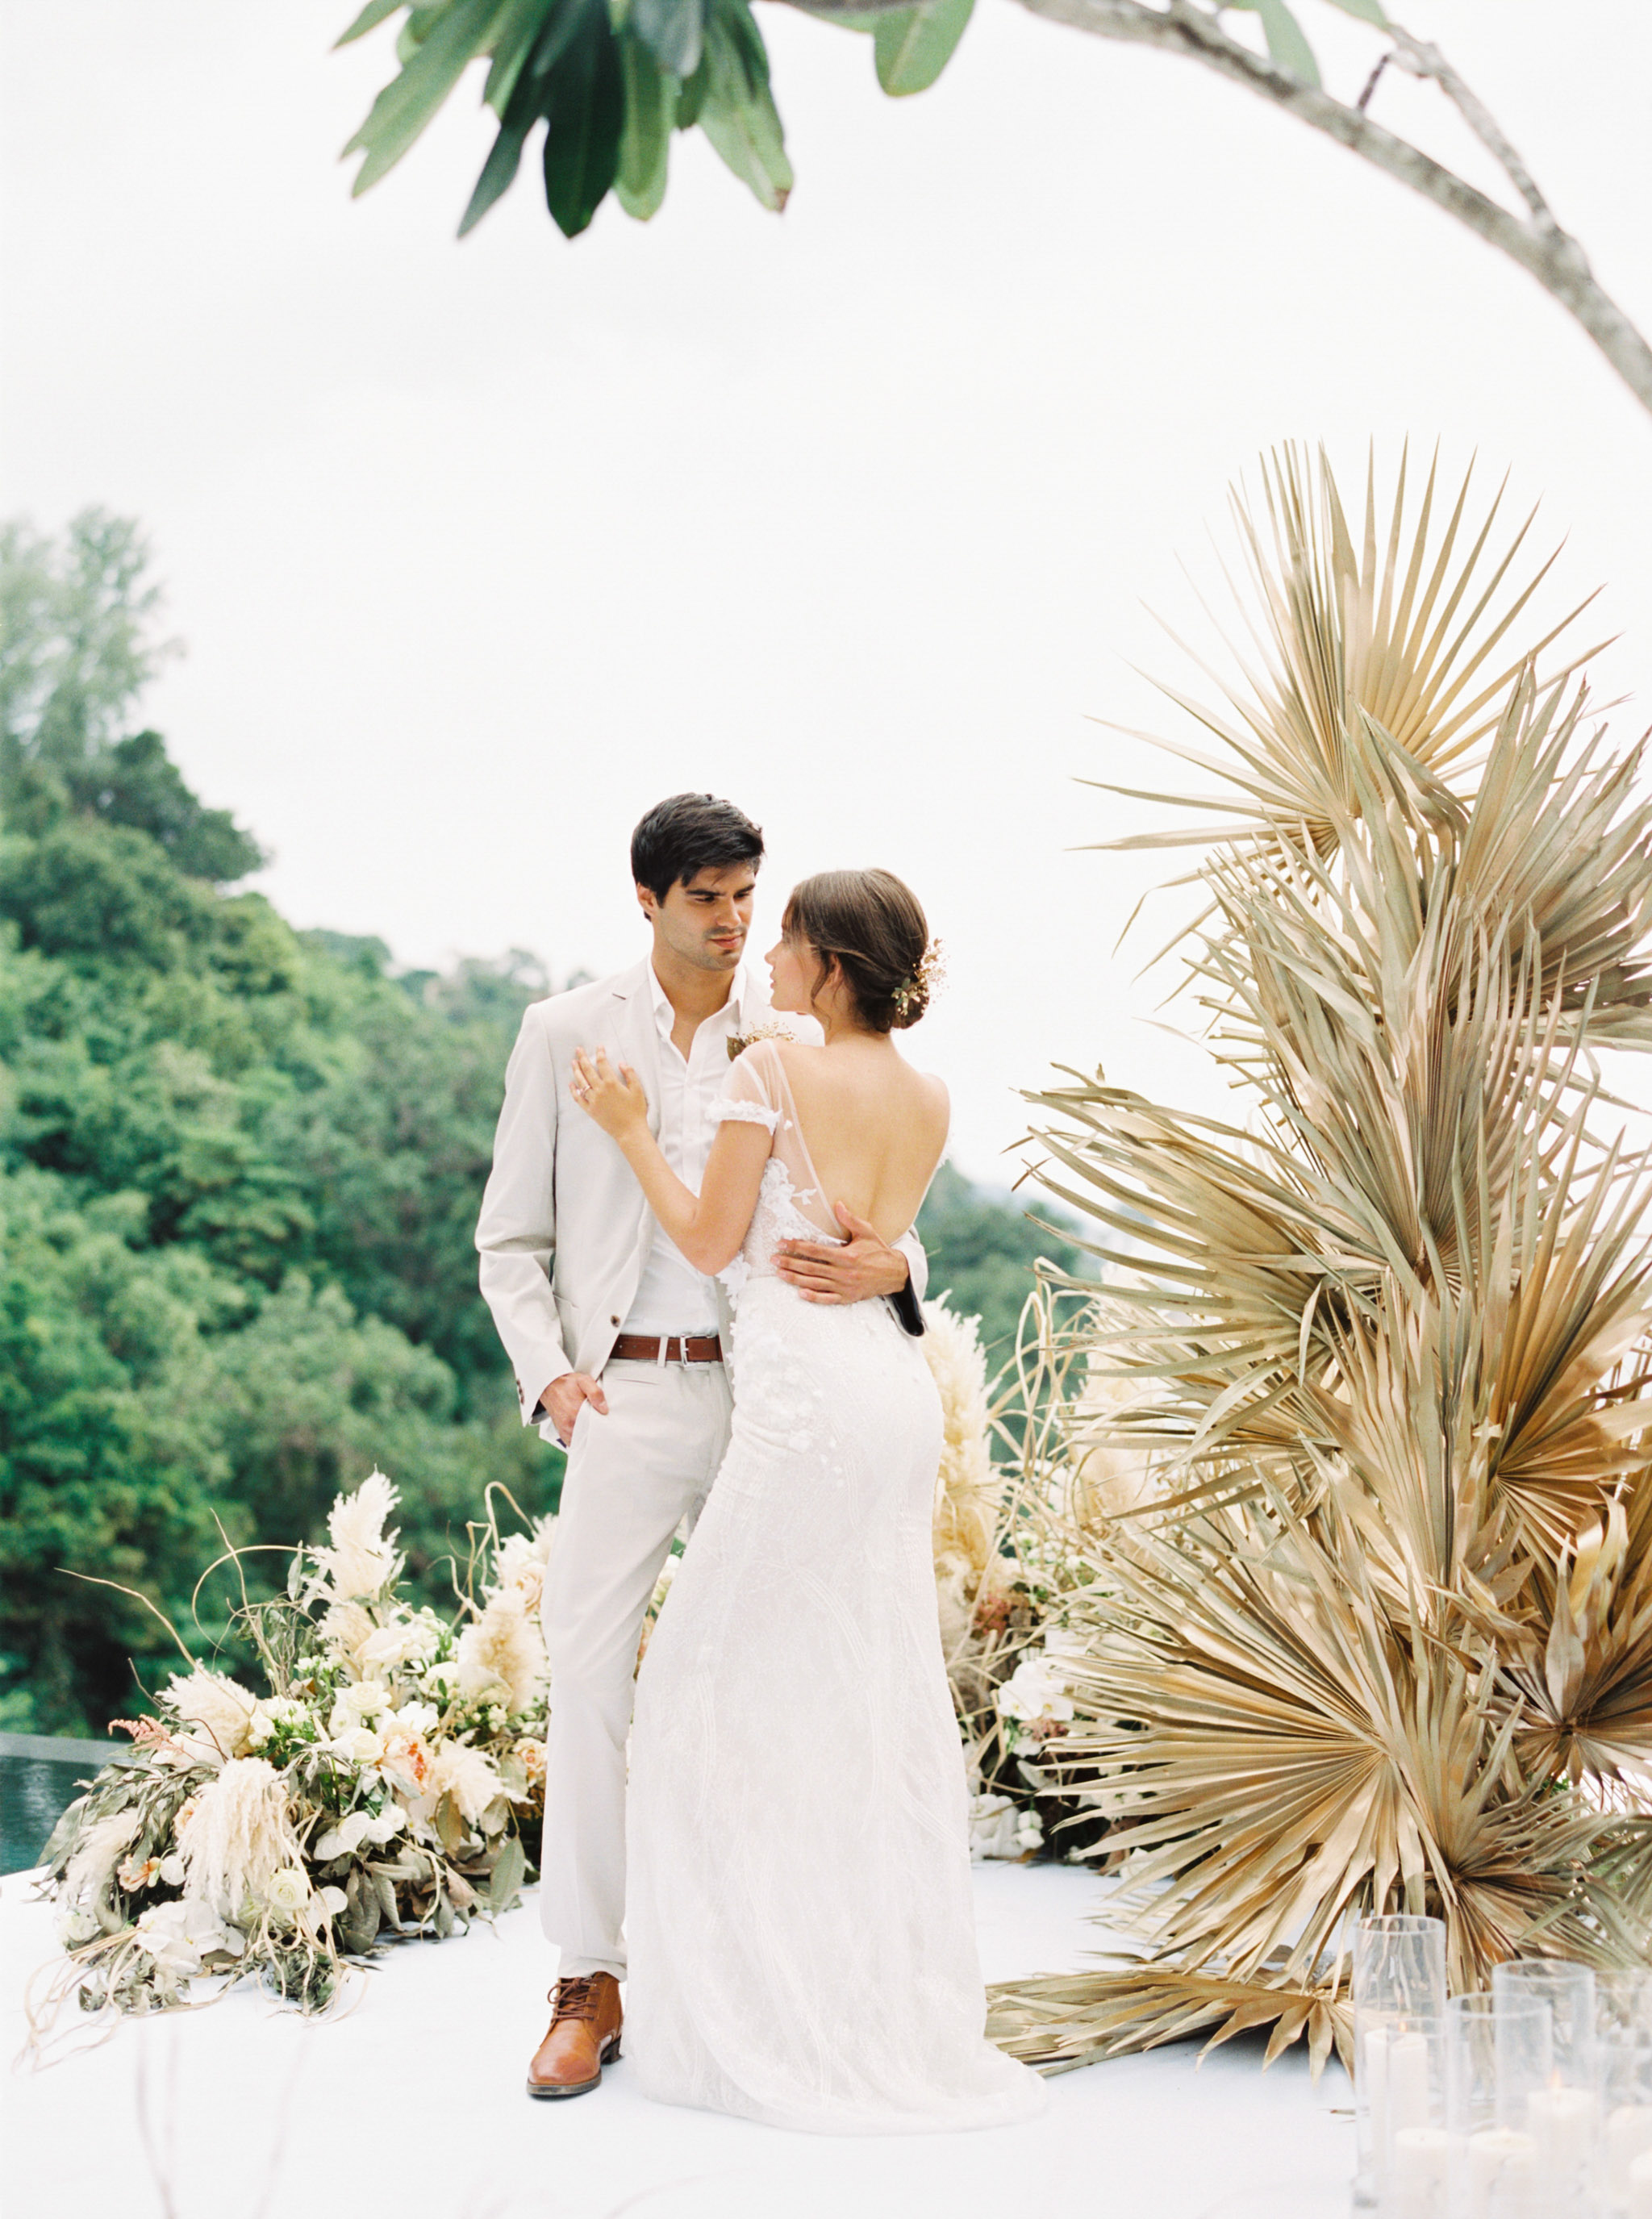 Destination Wedding at The Aquila Luxury Villas in Phuket Thailand Fine Art Film Wedding Photographer Sheri McMahon-00002-2.jpg